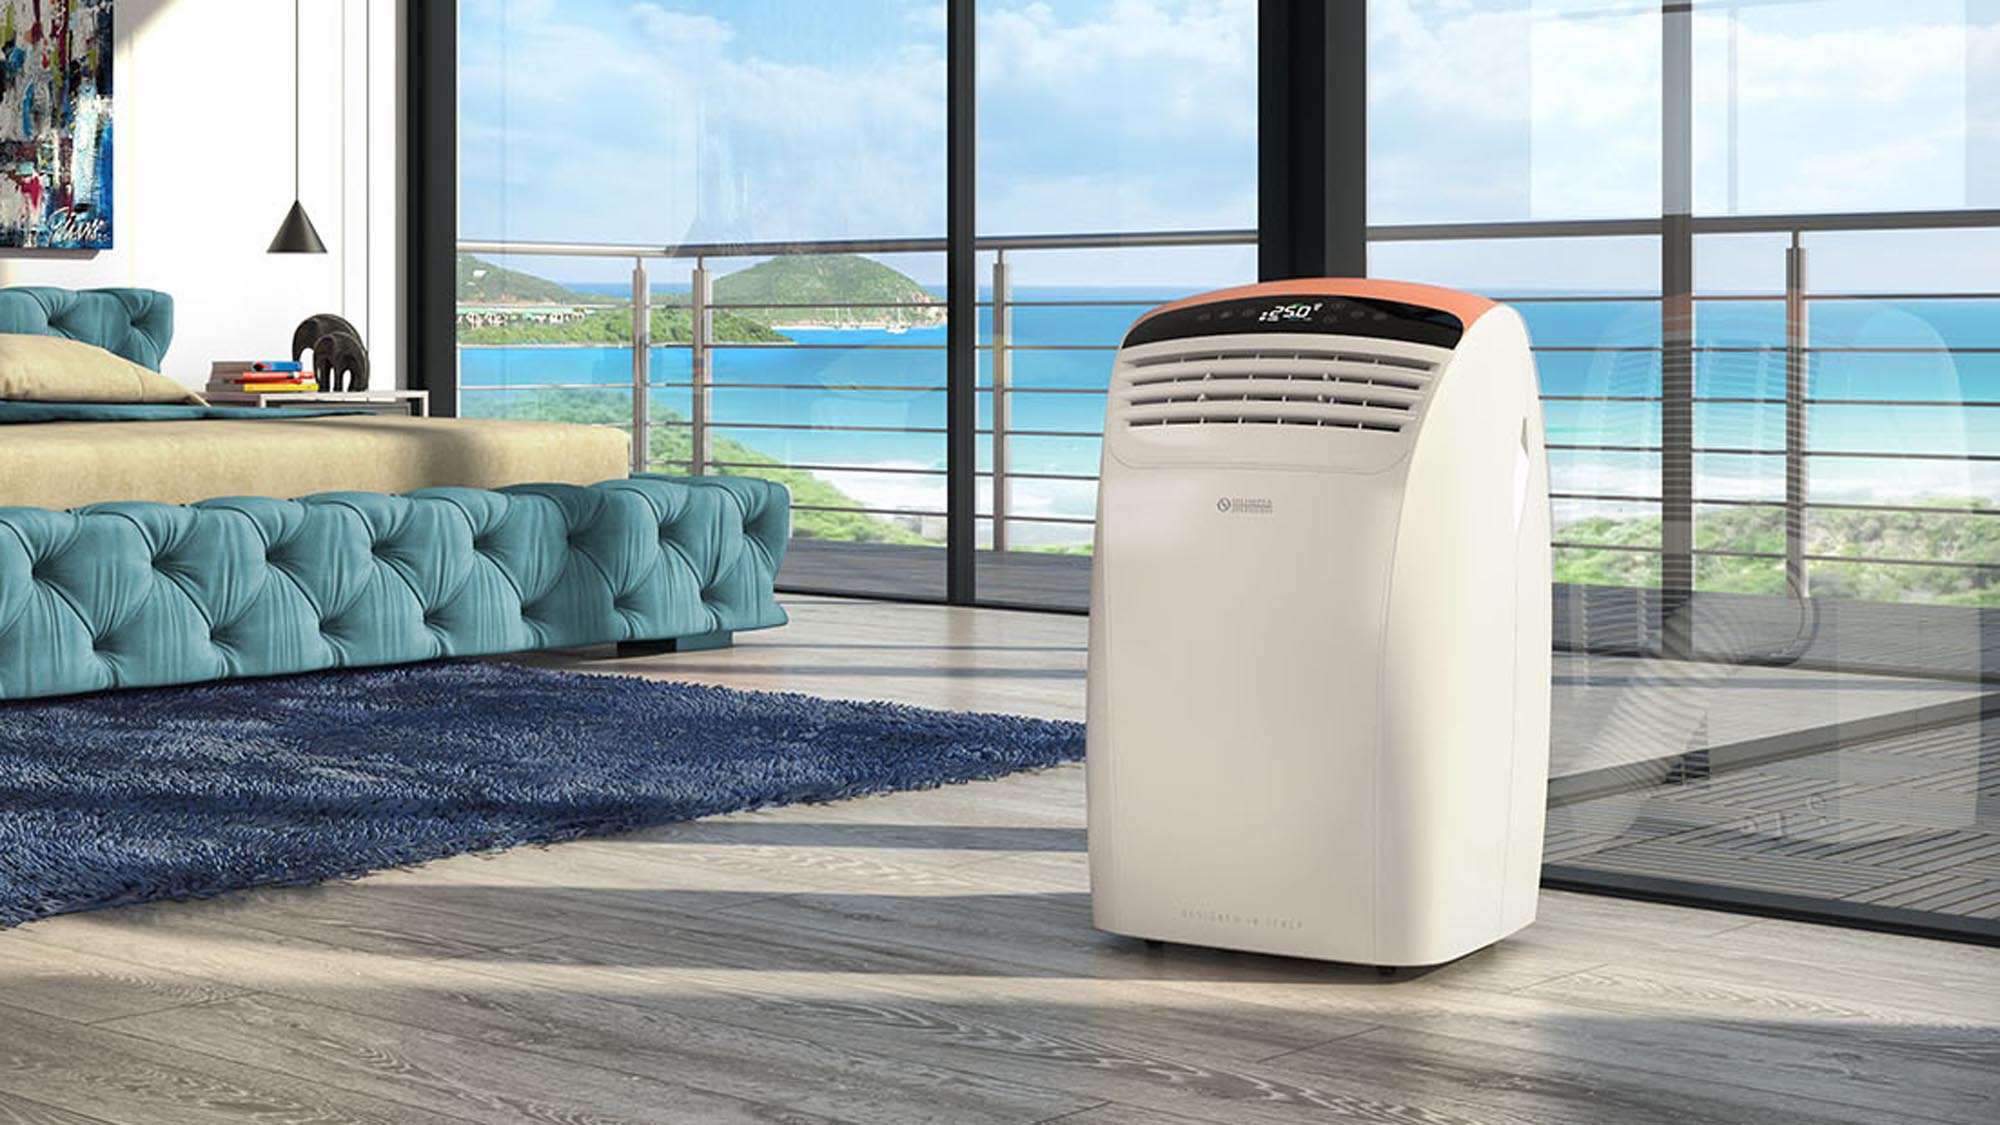 Should You Buy An Ac Or Air Cooler For Your Home: 6 Points To Help You Decide